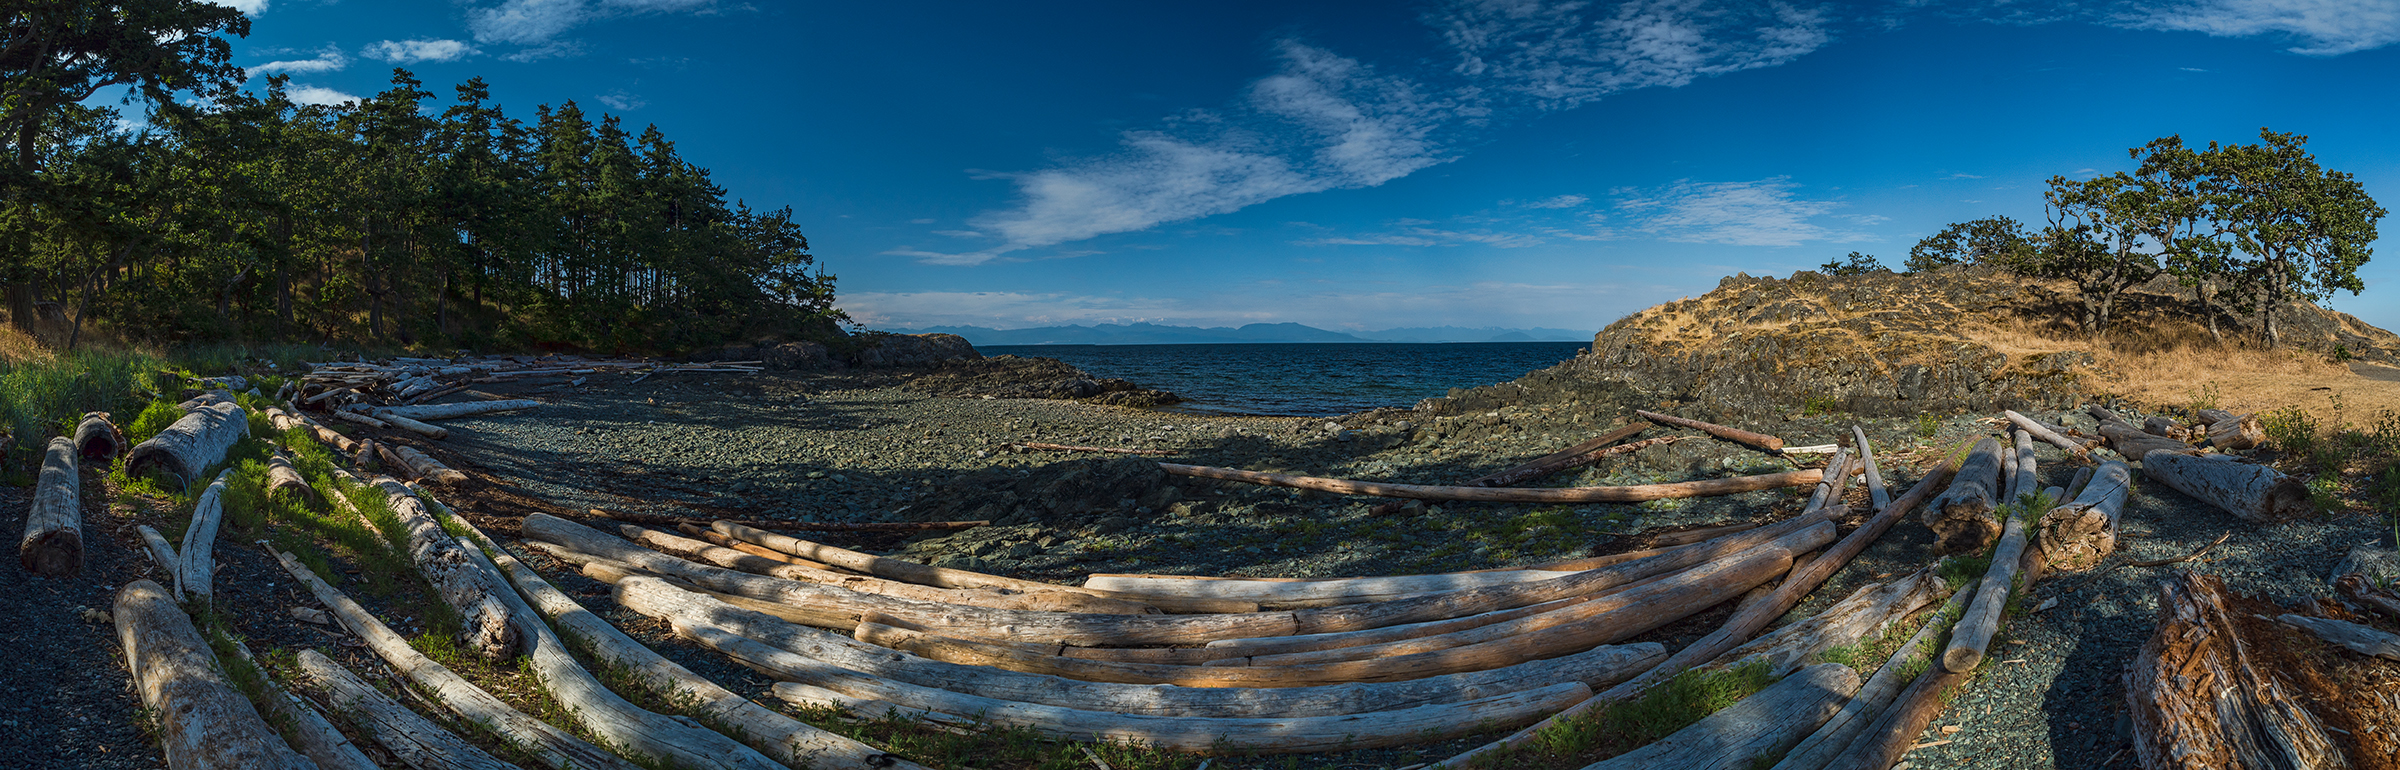 Panorama of beach at Pipers Lagoon Park